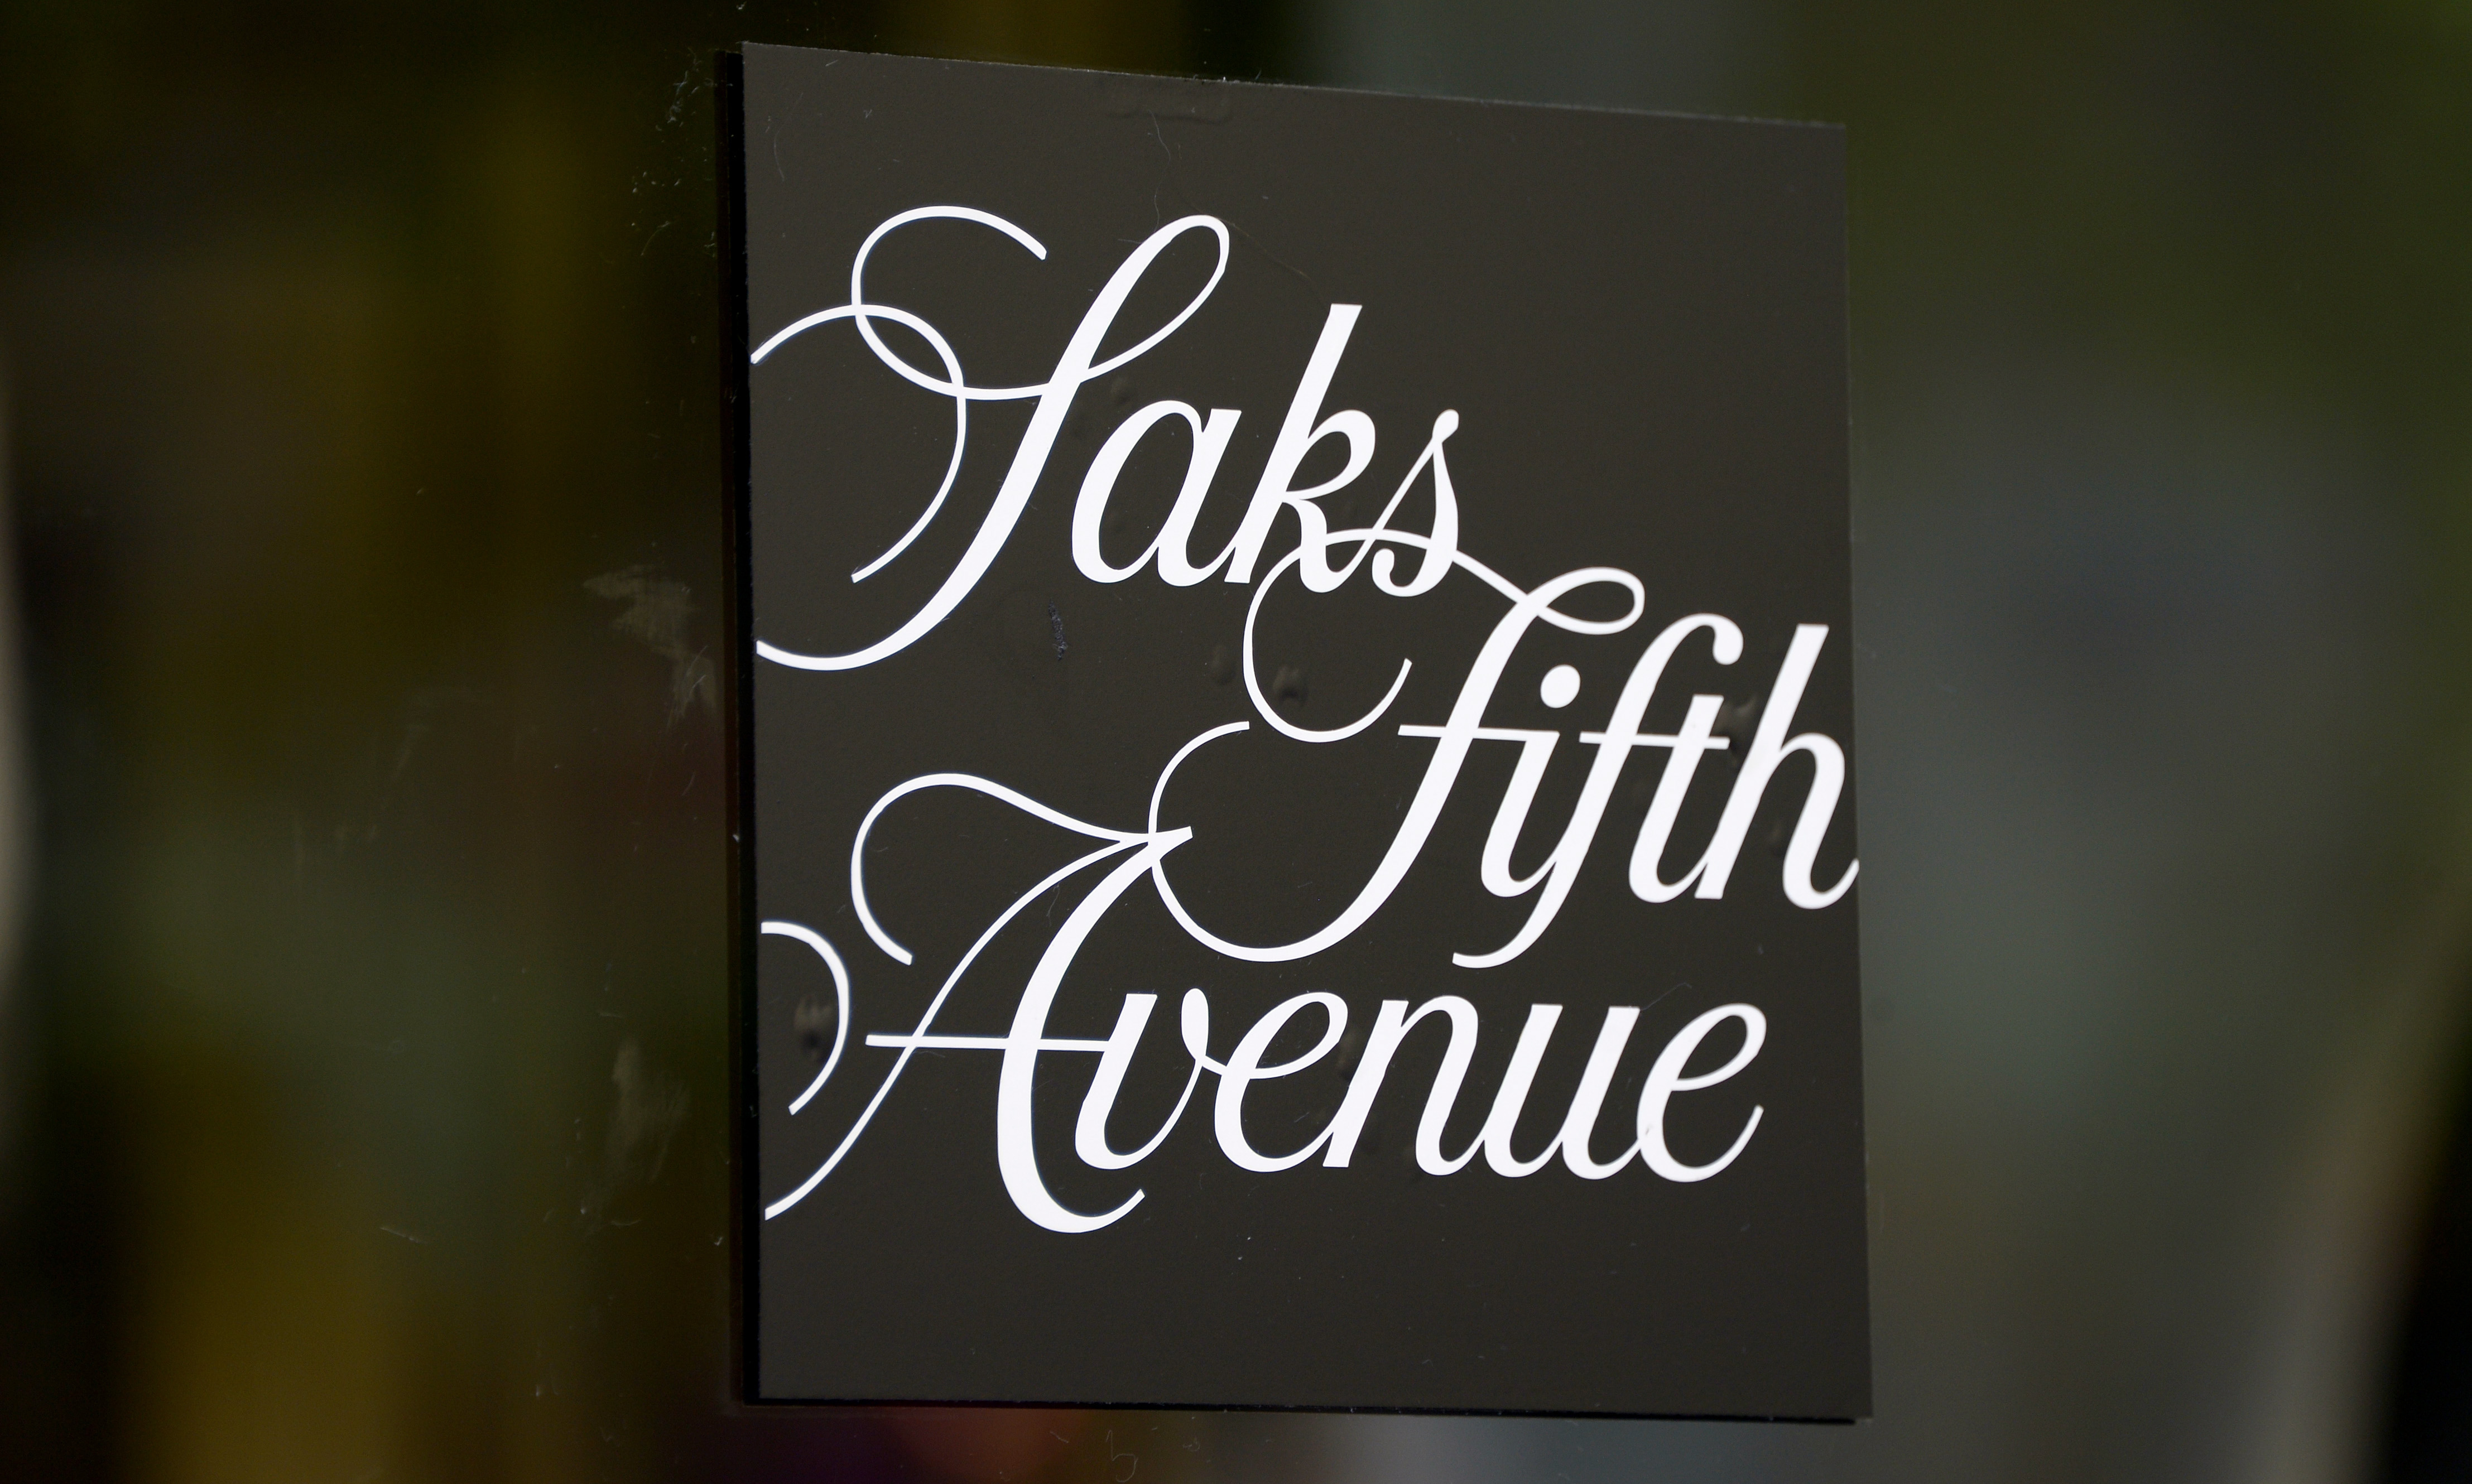 A View of a Sign at a Saks Fifth Avenue Store in New York New York Usa 30 July 2013 Reports on 29 July State That Saks Fifth Avenue Will Be Sold to Hudson's Bay a Company Based in Canada who Also Owns the Store Lord & Taylor For 2 4 Billion Us Dollars United States New YorkUsa Saks Fifth Avenue - Jul 2013